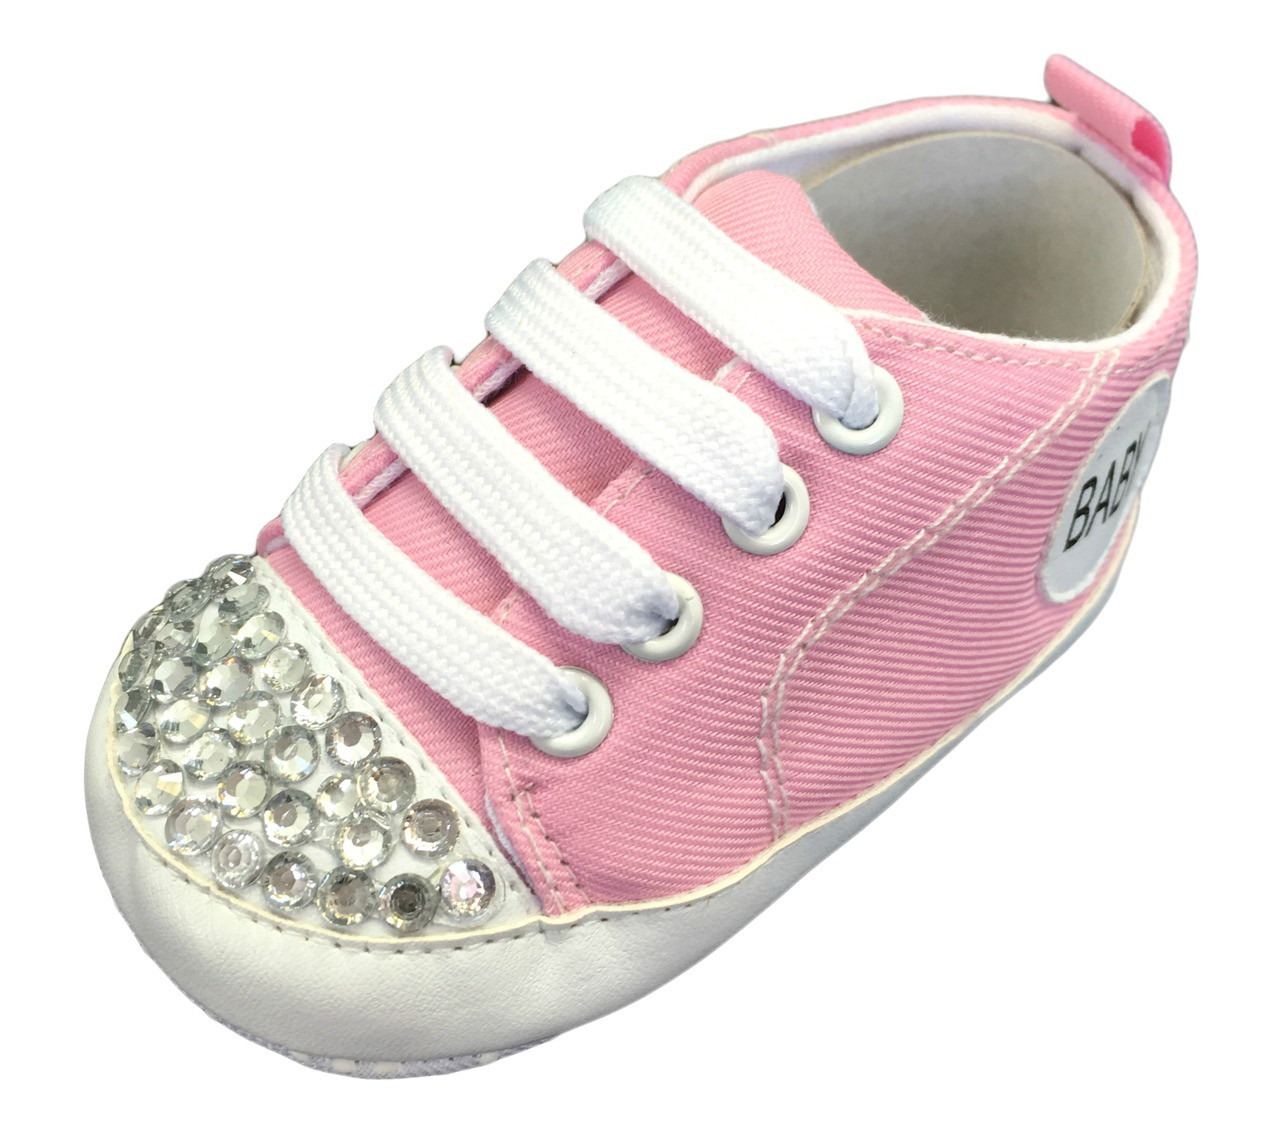 Light Pink Baby Sneaker Crib Shoes With Rhinestones a8bb243de9e8